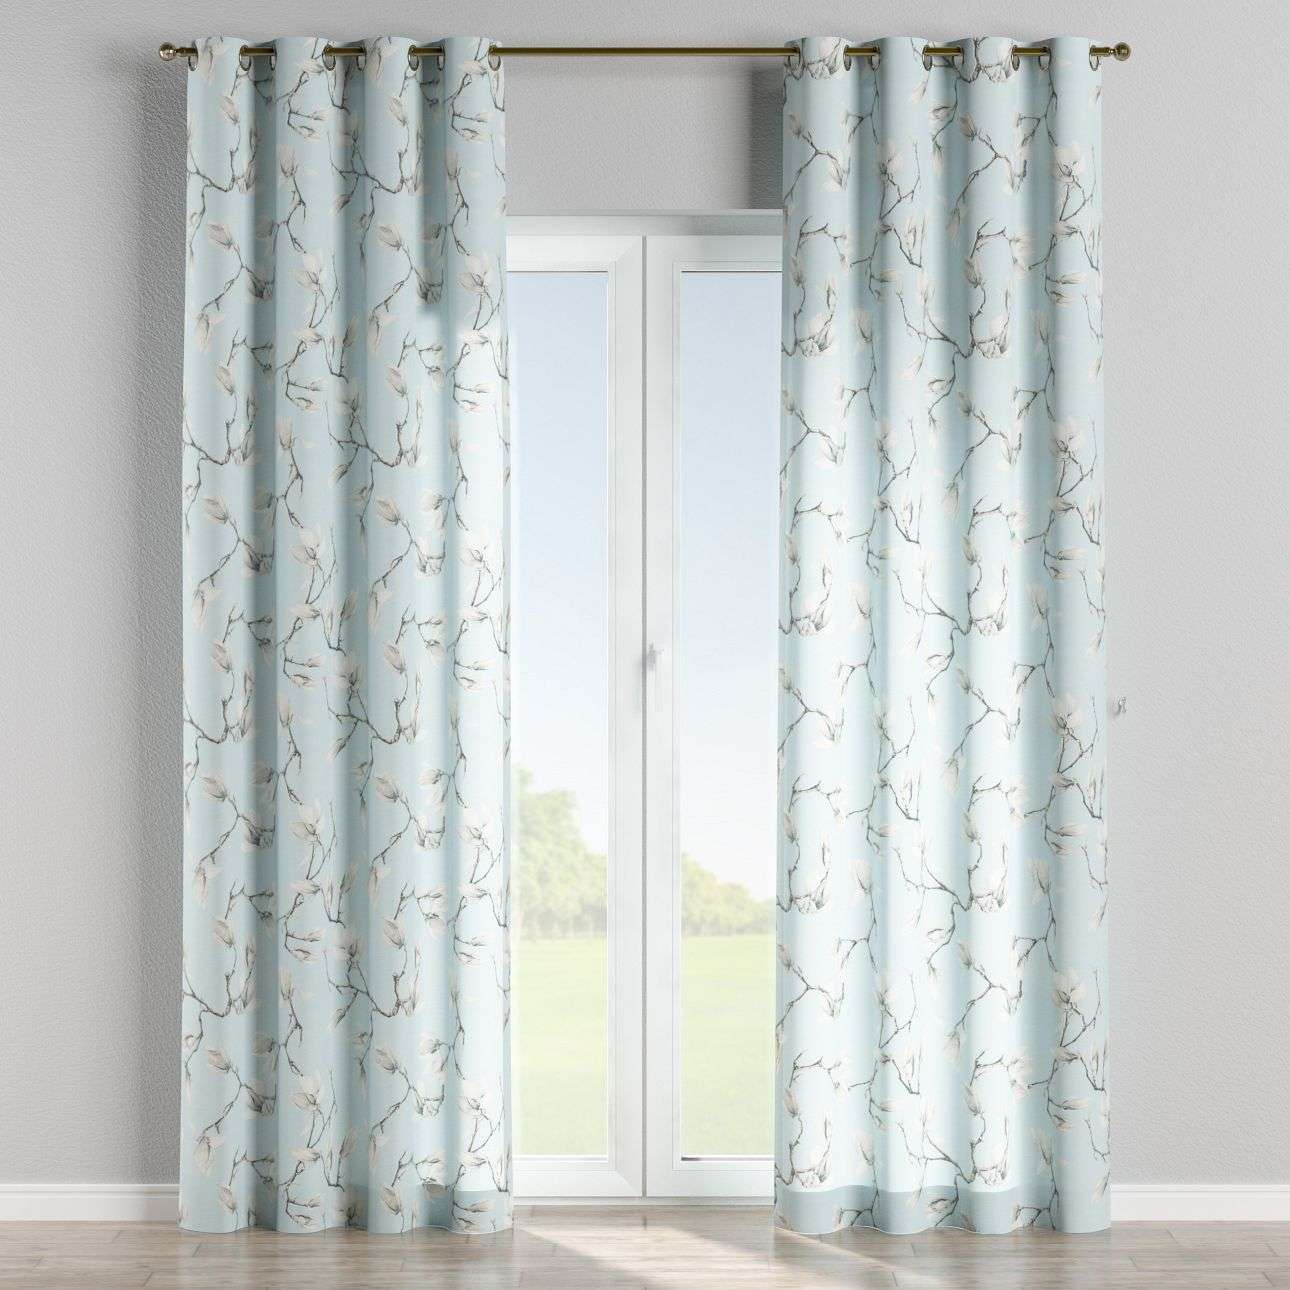 Eyelet curtains 130 × 260 cm (51 × 102 inch) in collection Flowers, fabric: 311-14